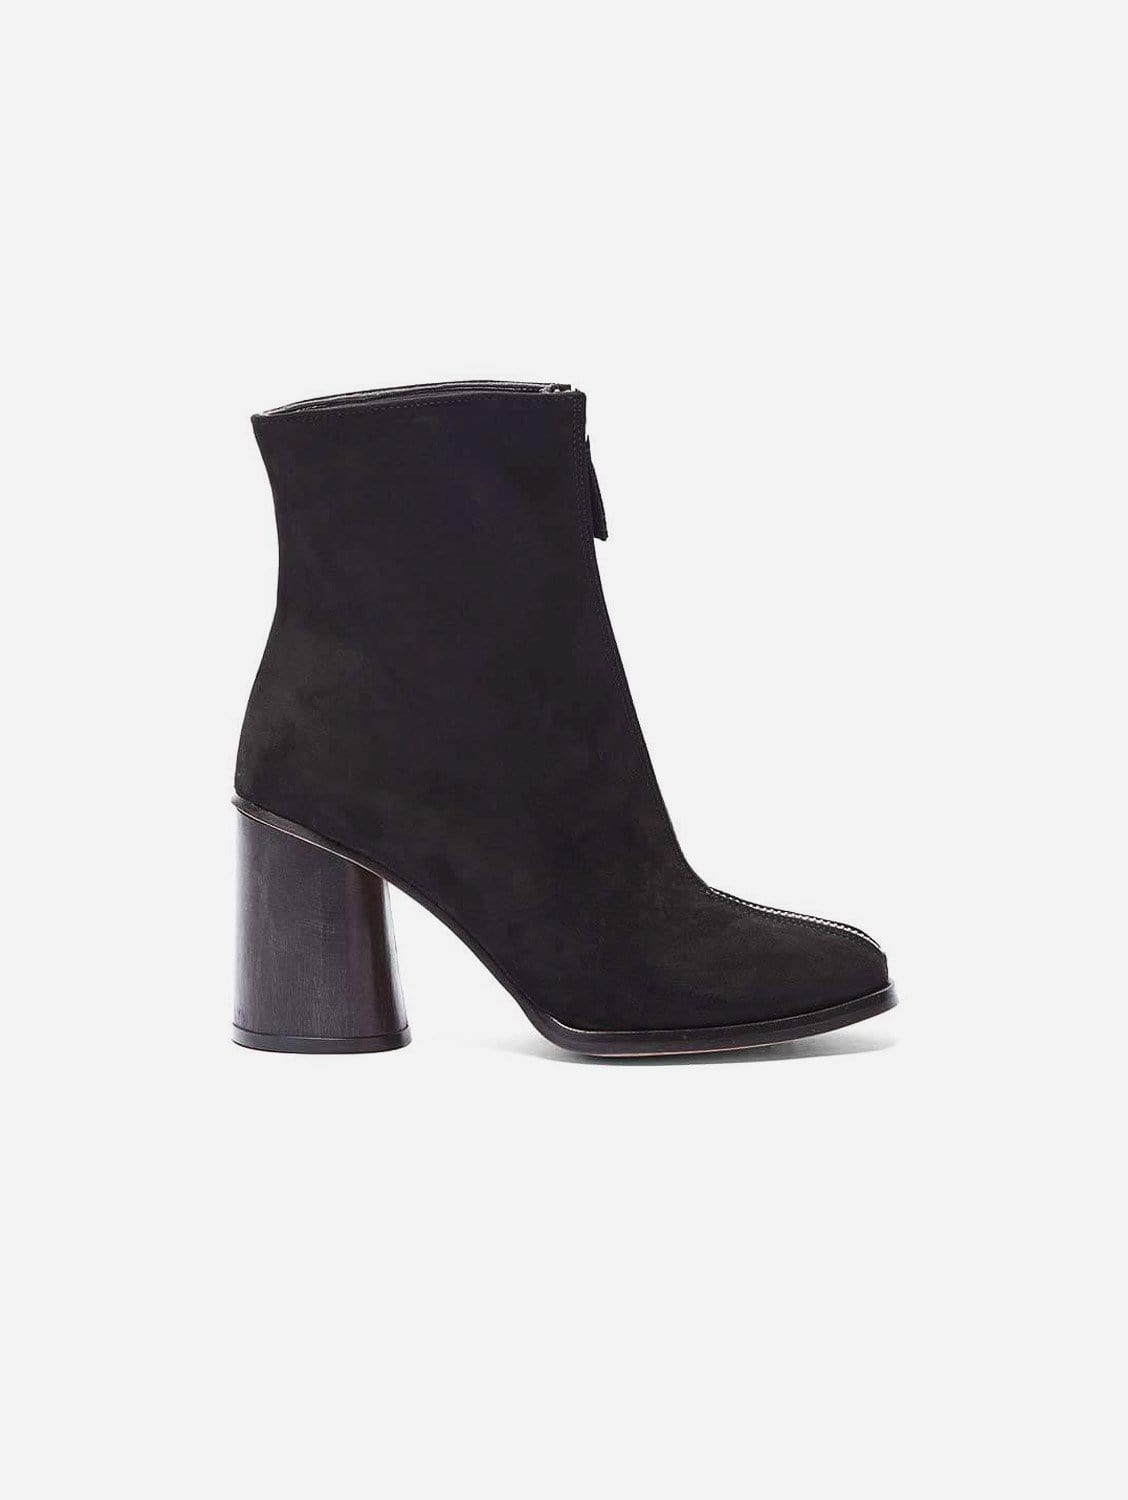 Lourdes Recycled Polyester Vegan Suede Ankle Boot   Black